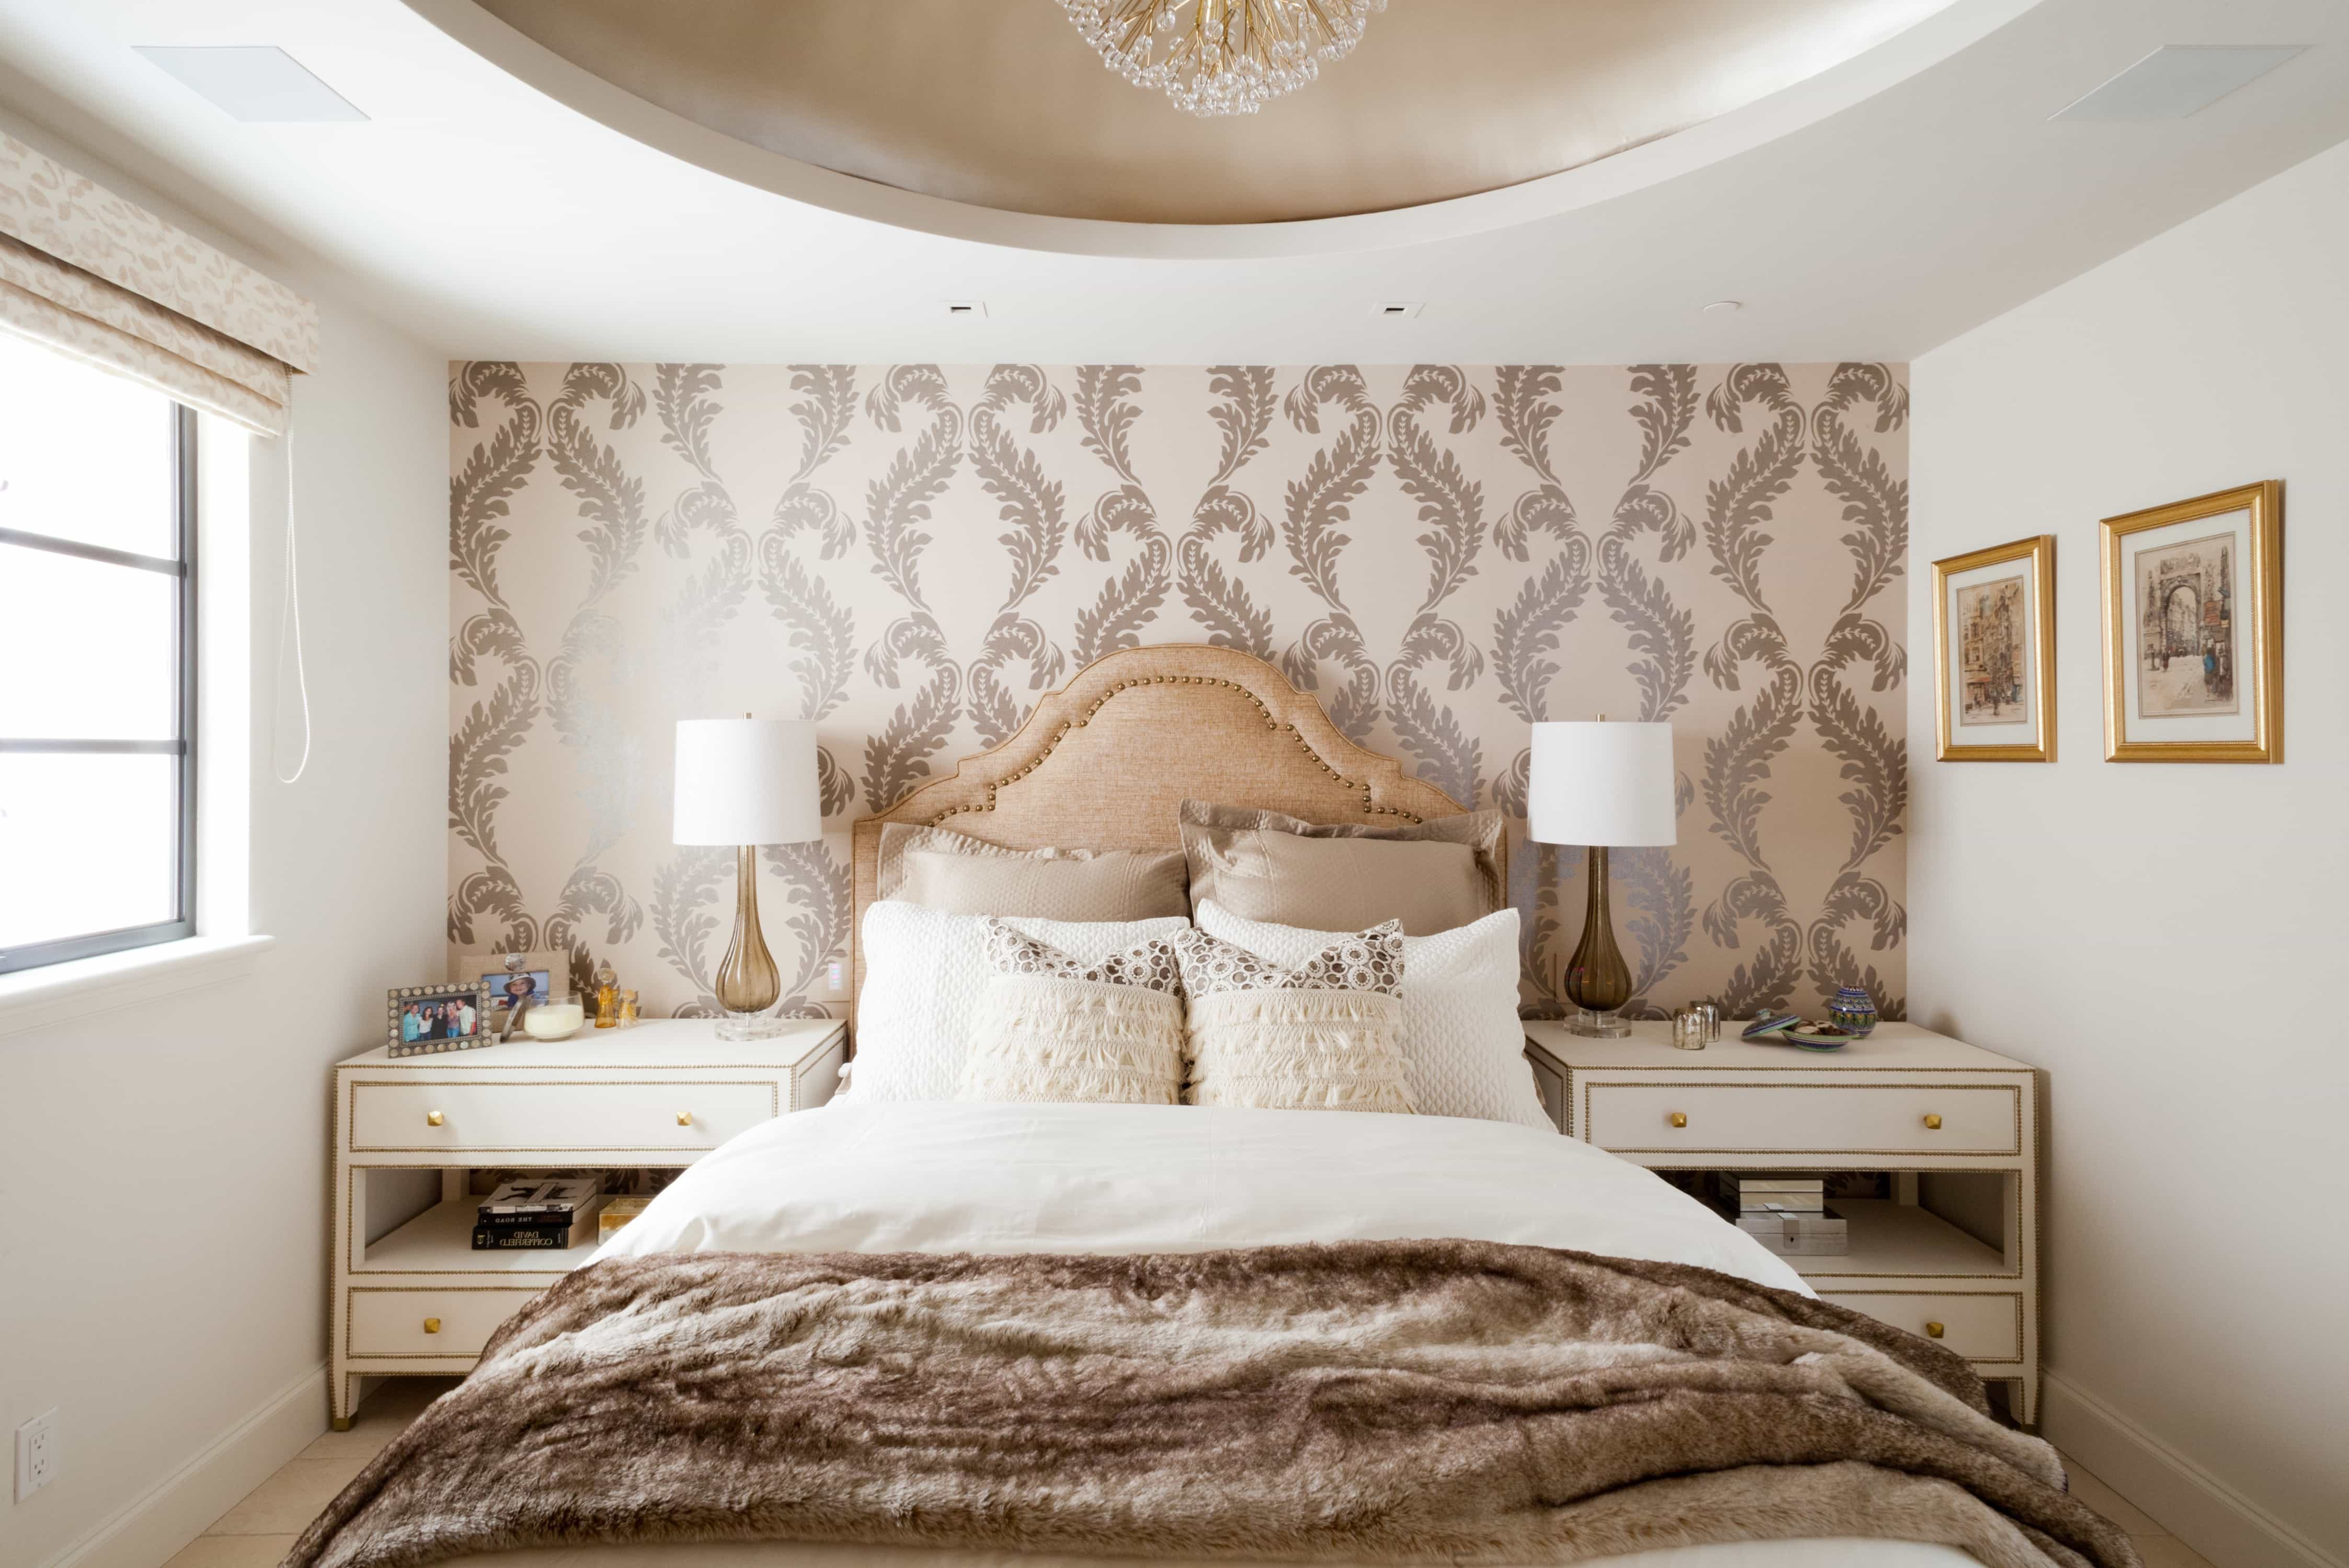 Romantic Shabby Chic Bedroom Elegant Decor (Image 9 of 20)